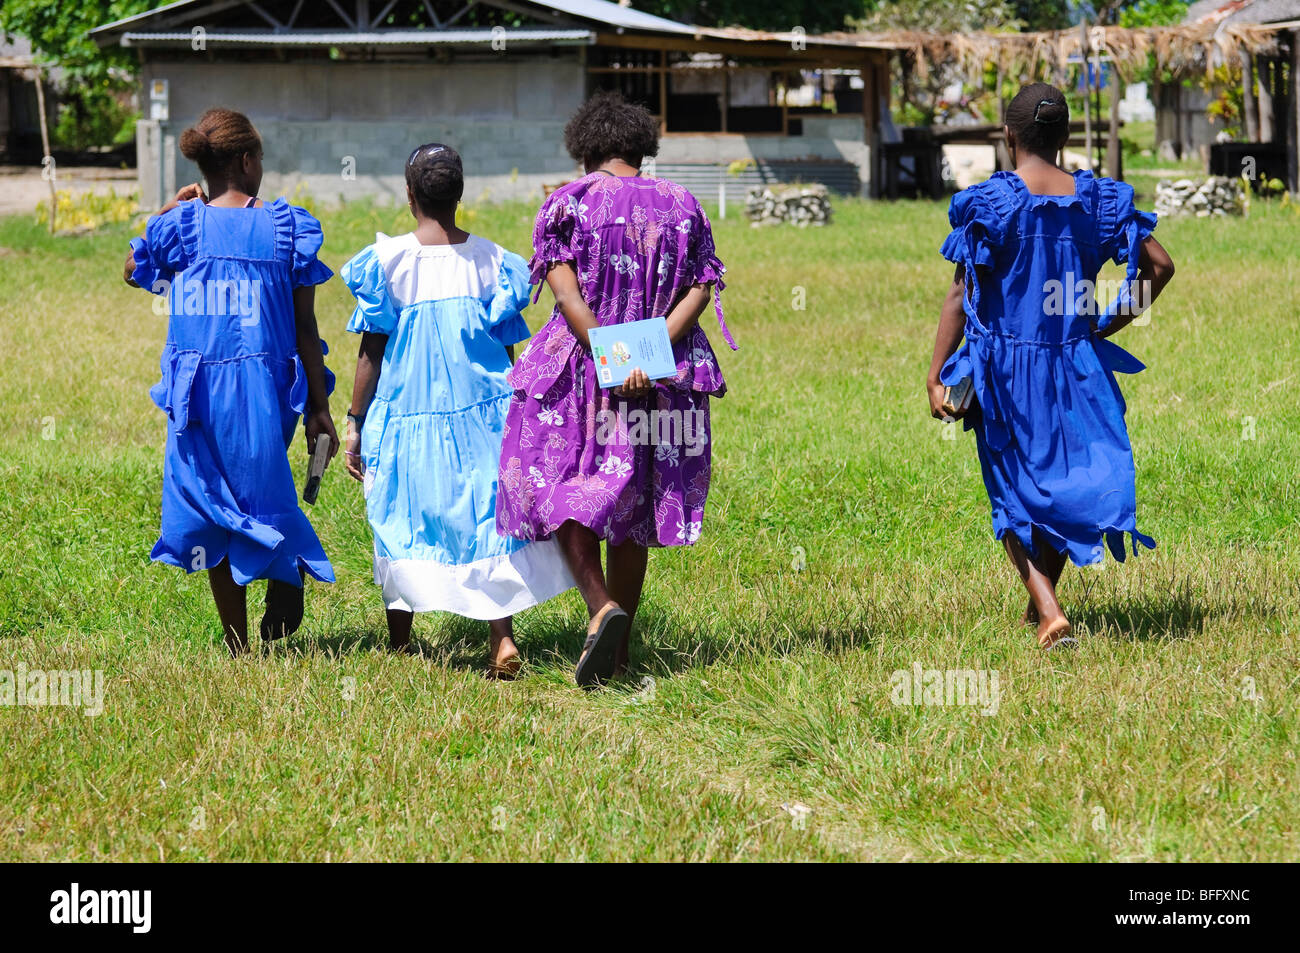 Melanesian ladies in their Sunday best, returning home from church. Click for details. - Stock Image